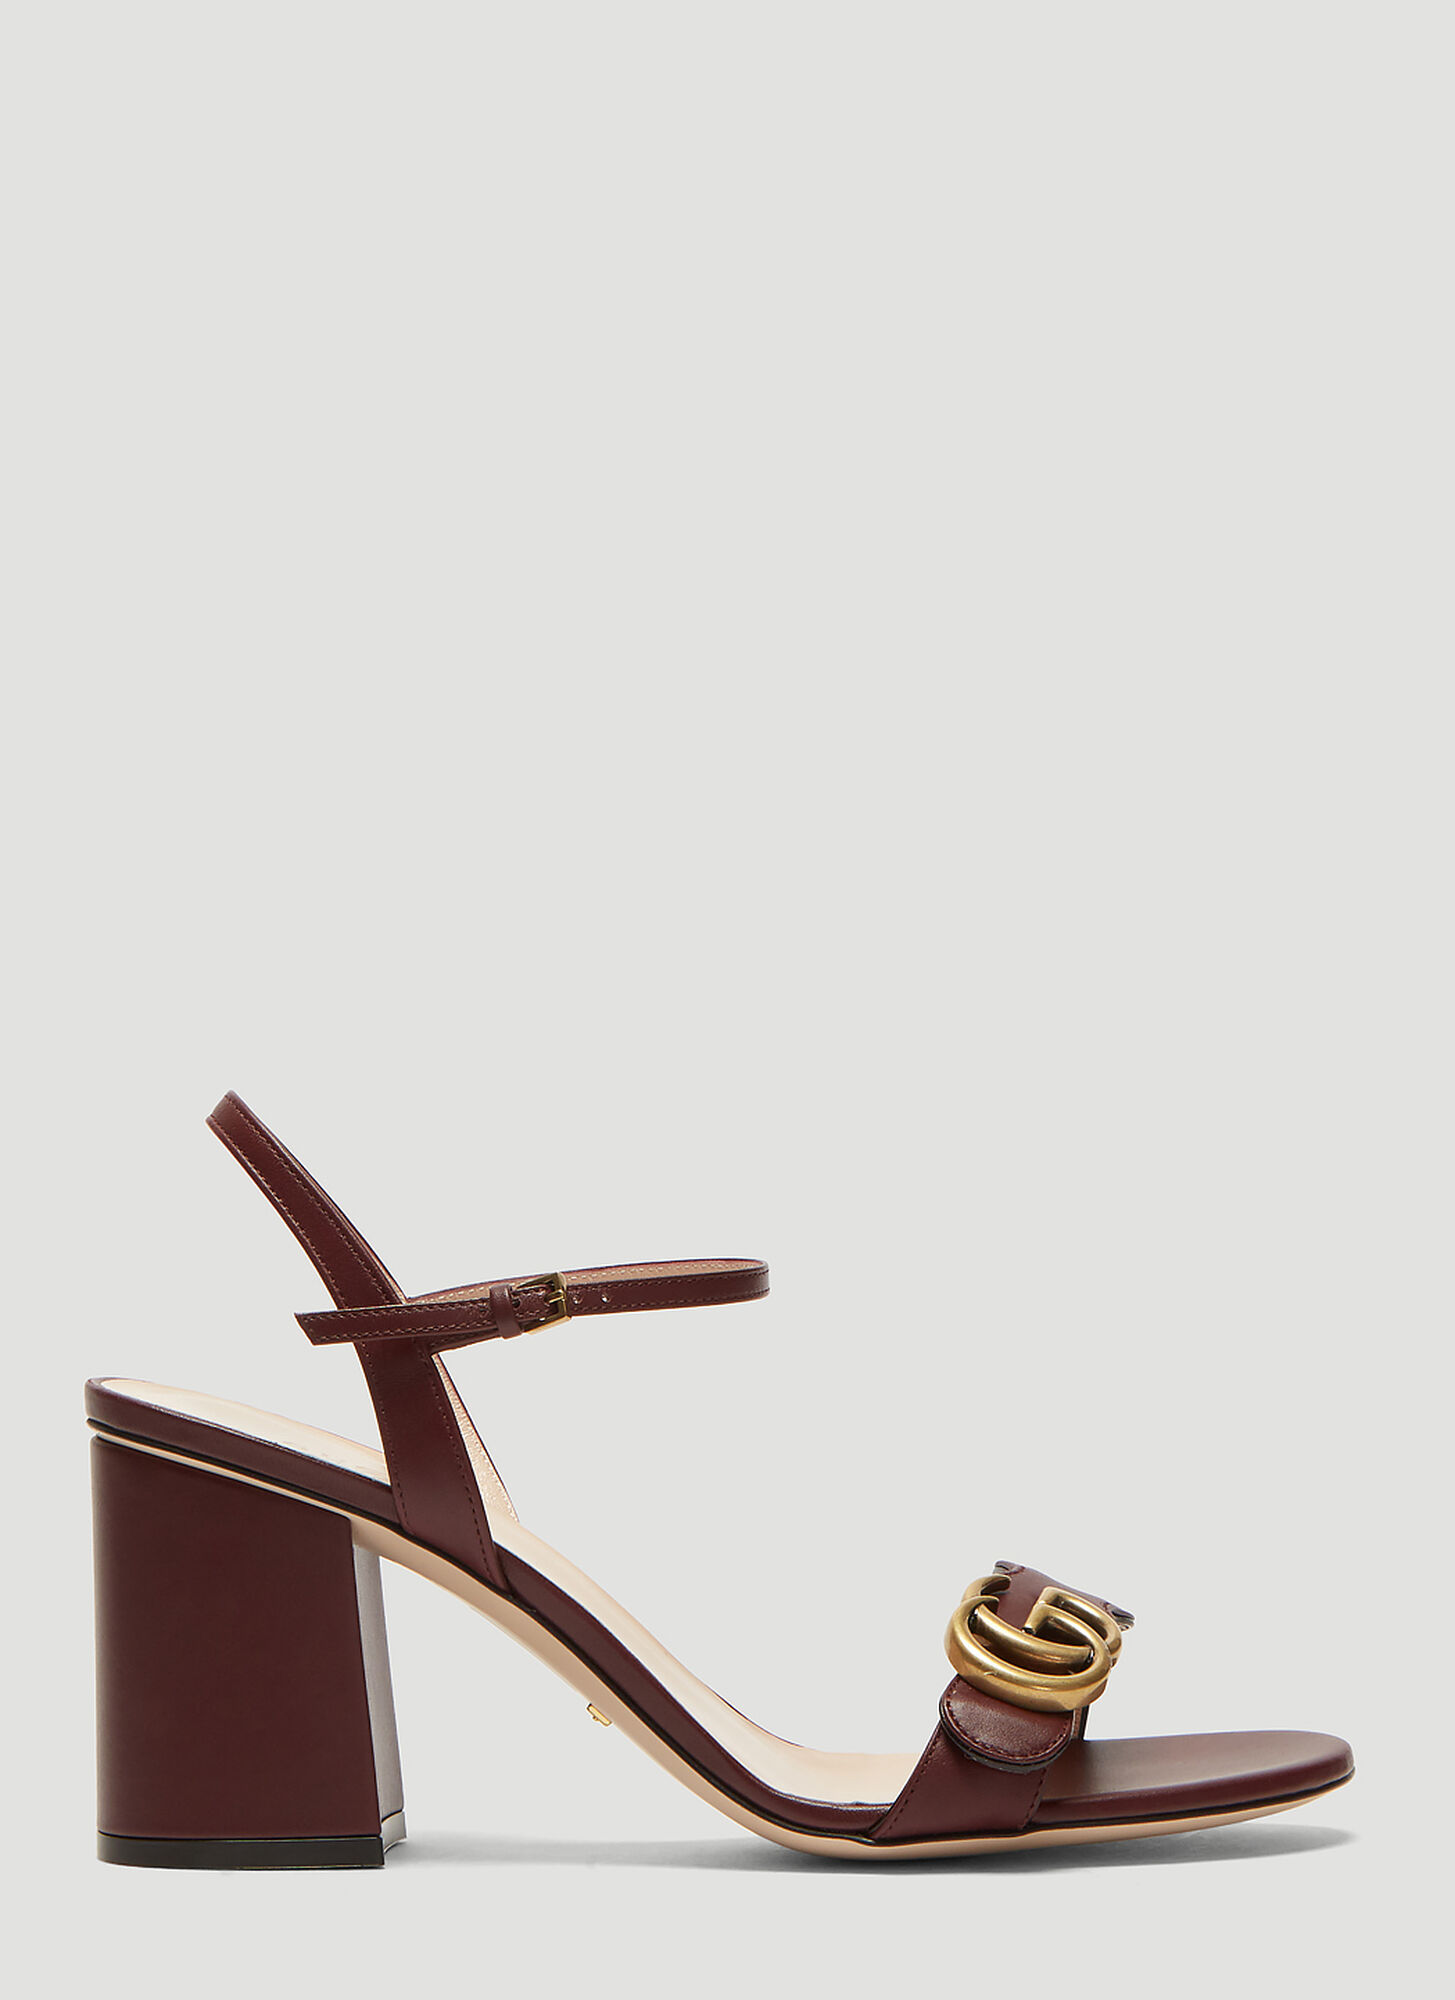 Gucci Double G Leather Mid-Heel sandal in Burgundy